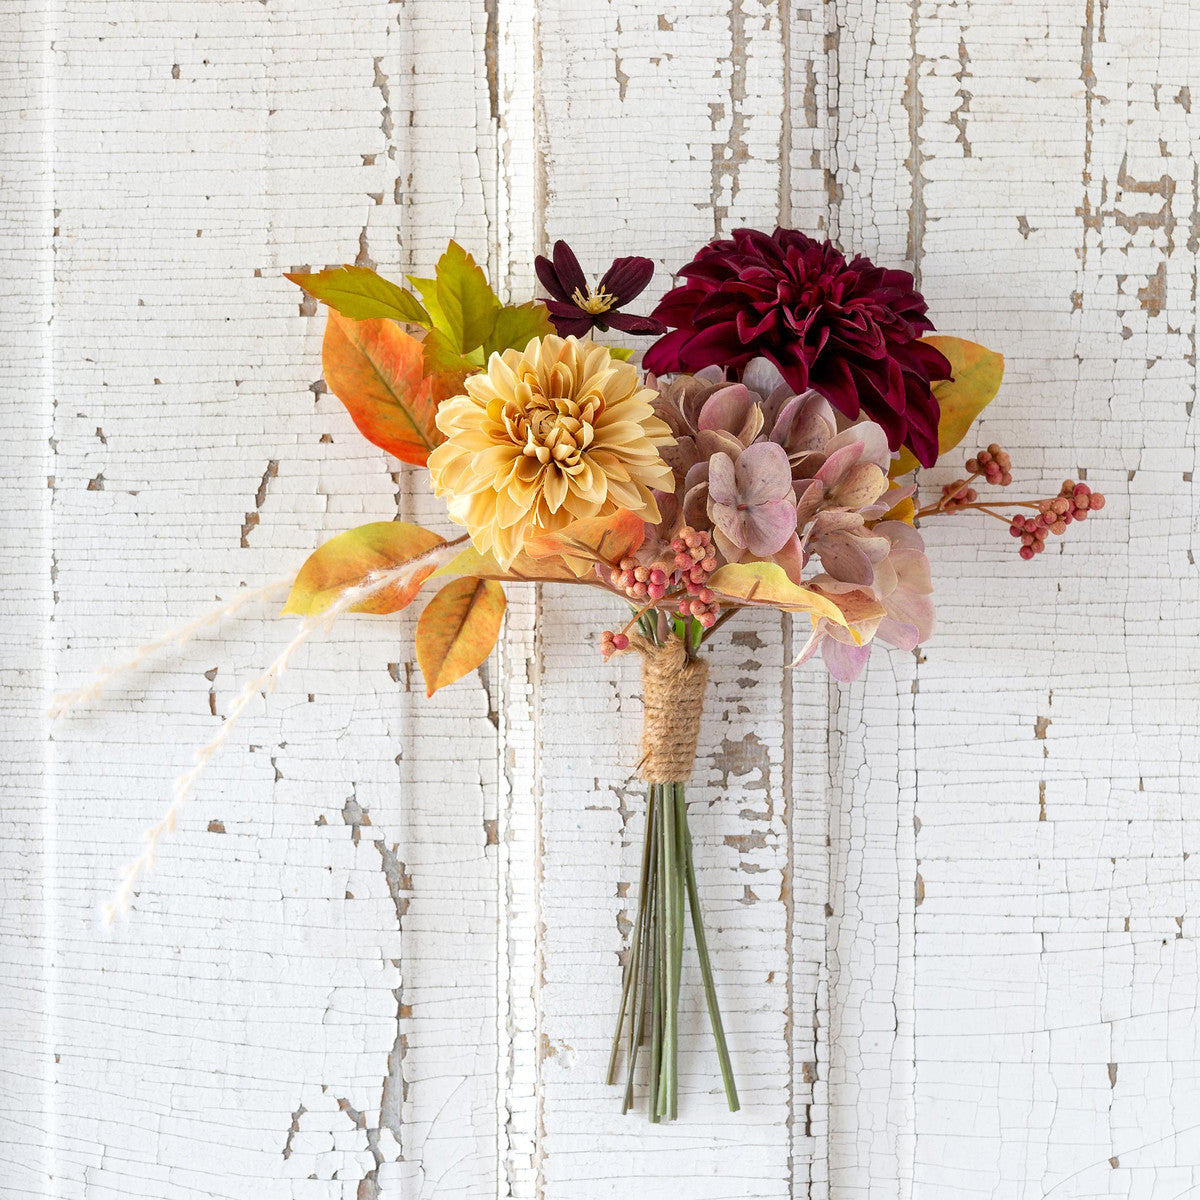 Dahlia And Hydrangea Market Bouquet - Set of 6